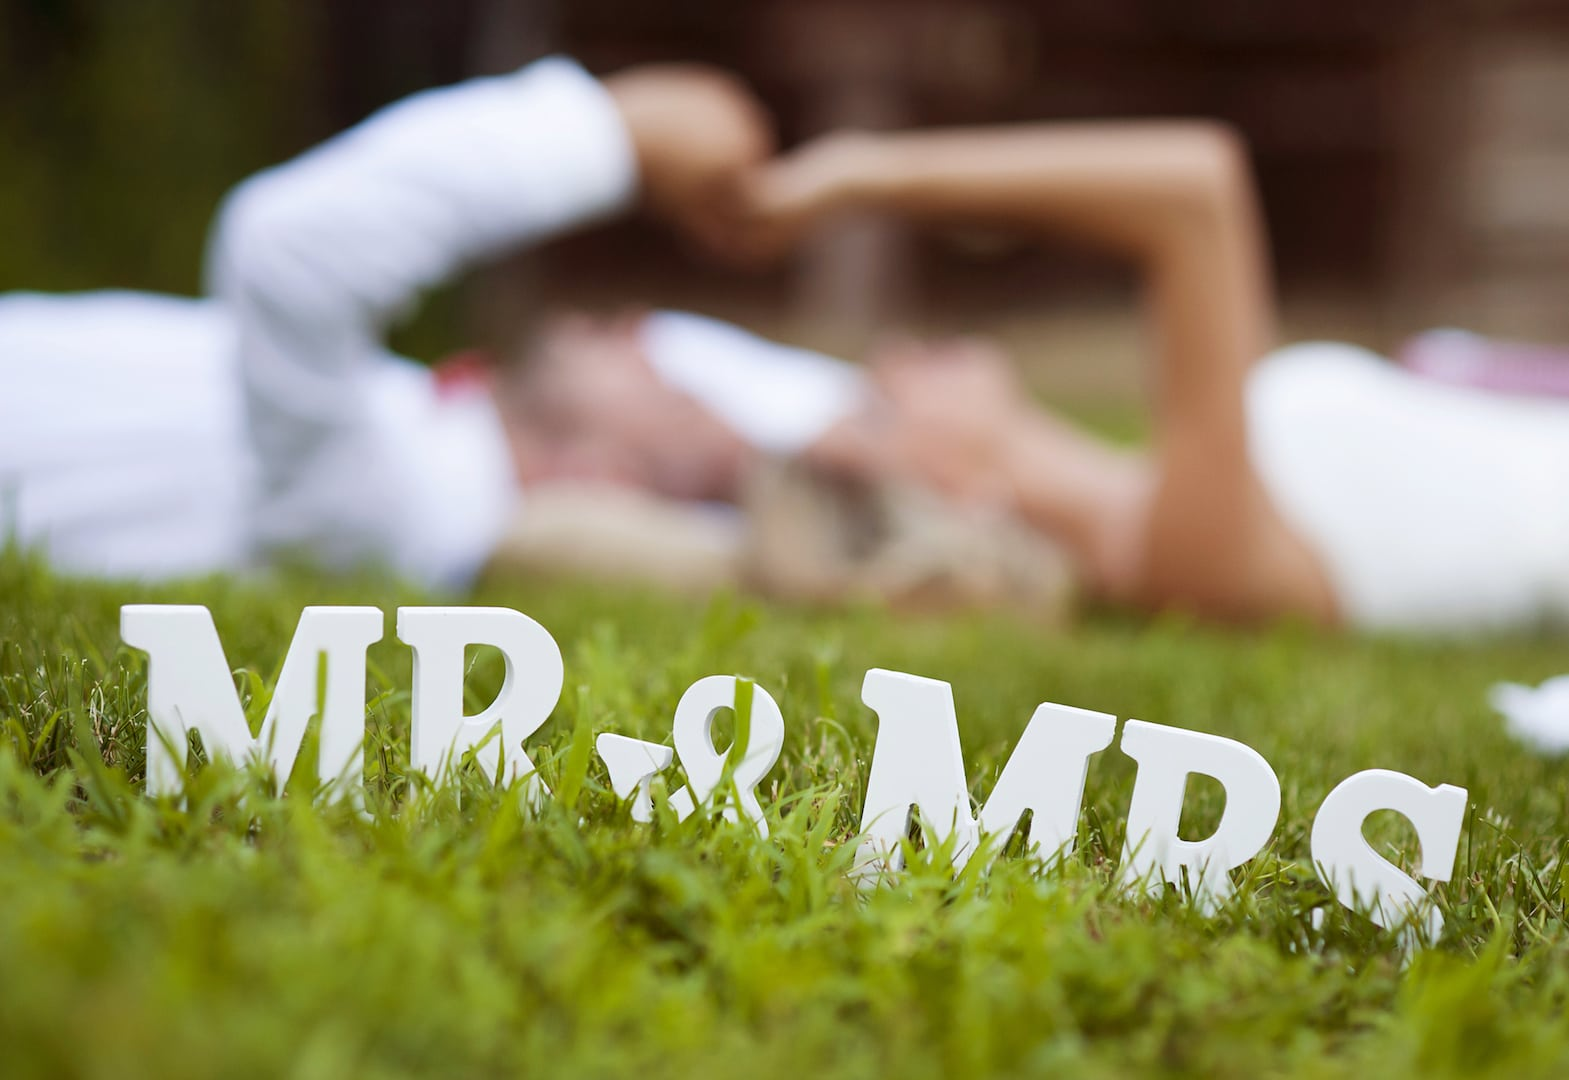 Truths about Weddings - graphicstock-happy-bride-and-groom-enjoying-their-wedding-day-in-green-nature-lying-on-grass_rATvQnnZ- copy